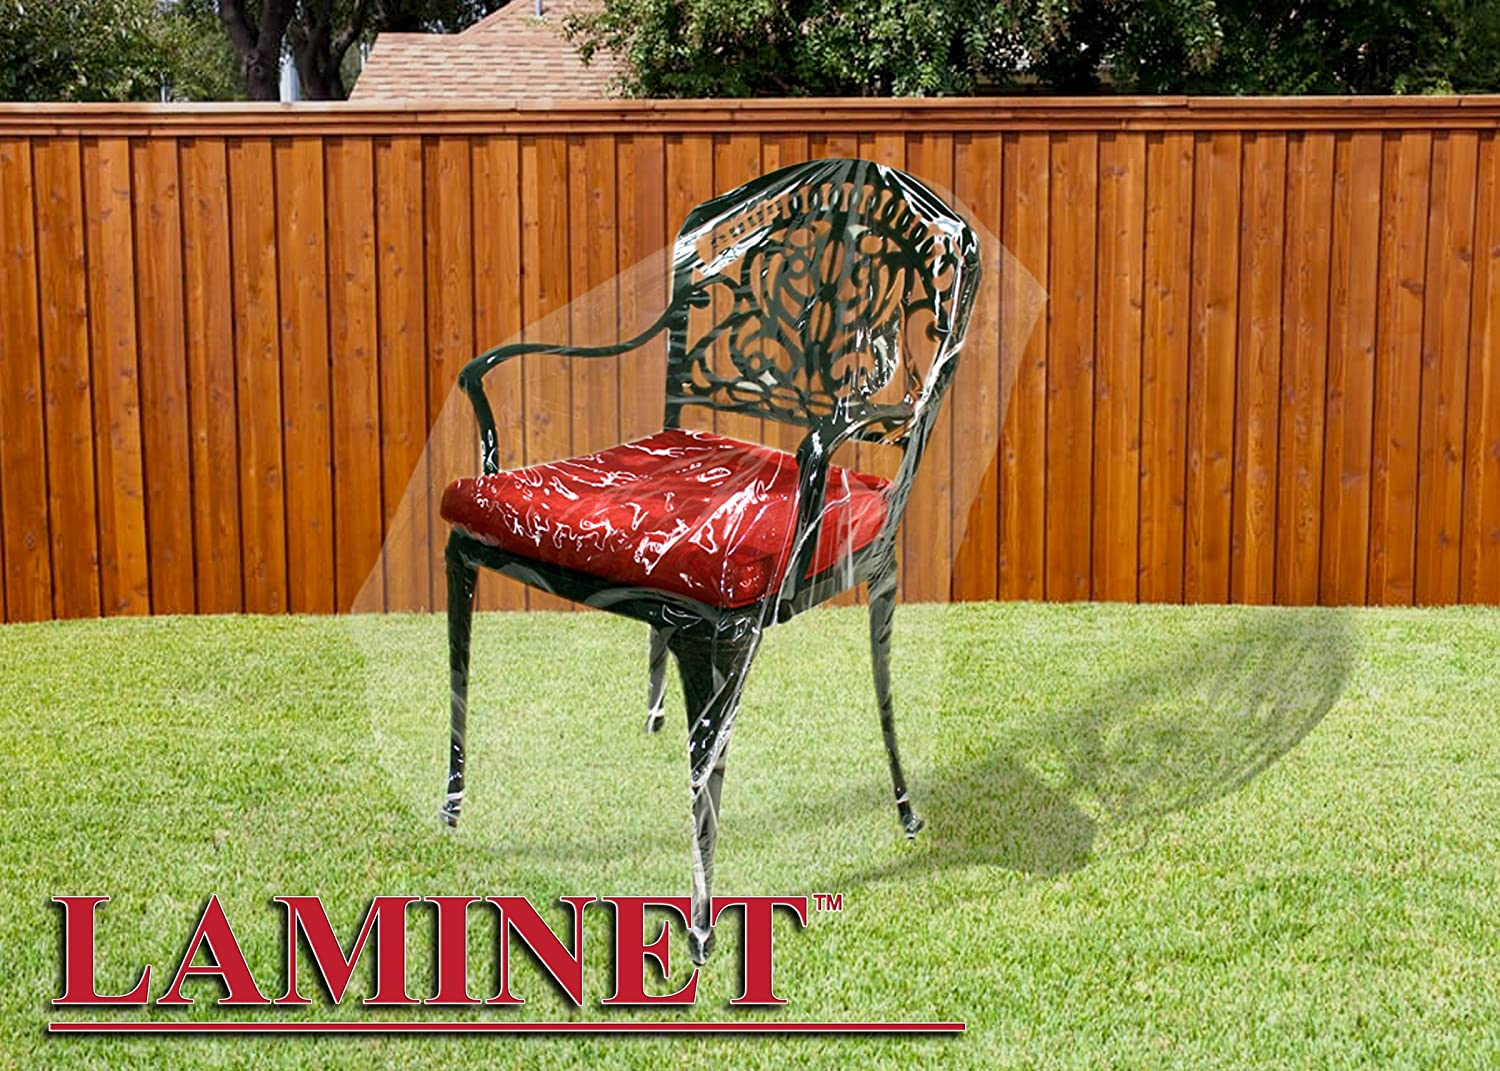 LAMINET Crystal Clear Heavy-Duty Waterproof Plastic Outdoor Furniture Cover - Chair Cover - 3 Season Protection - Keep Rain, Snow & Debris Off! Premium Protection at Economy Price!